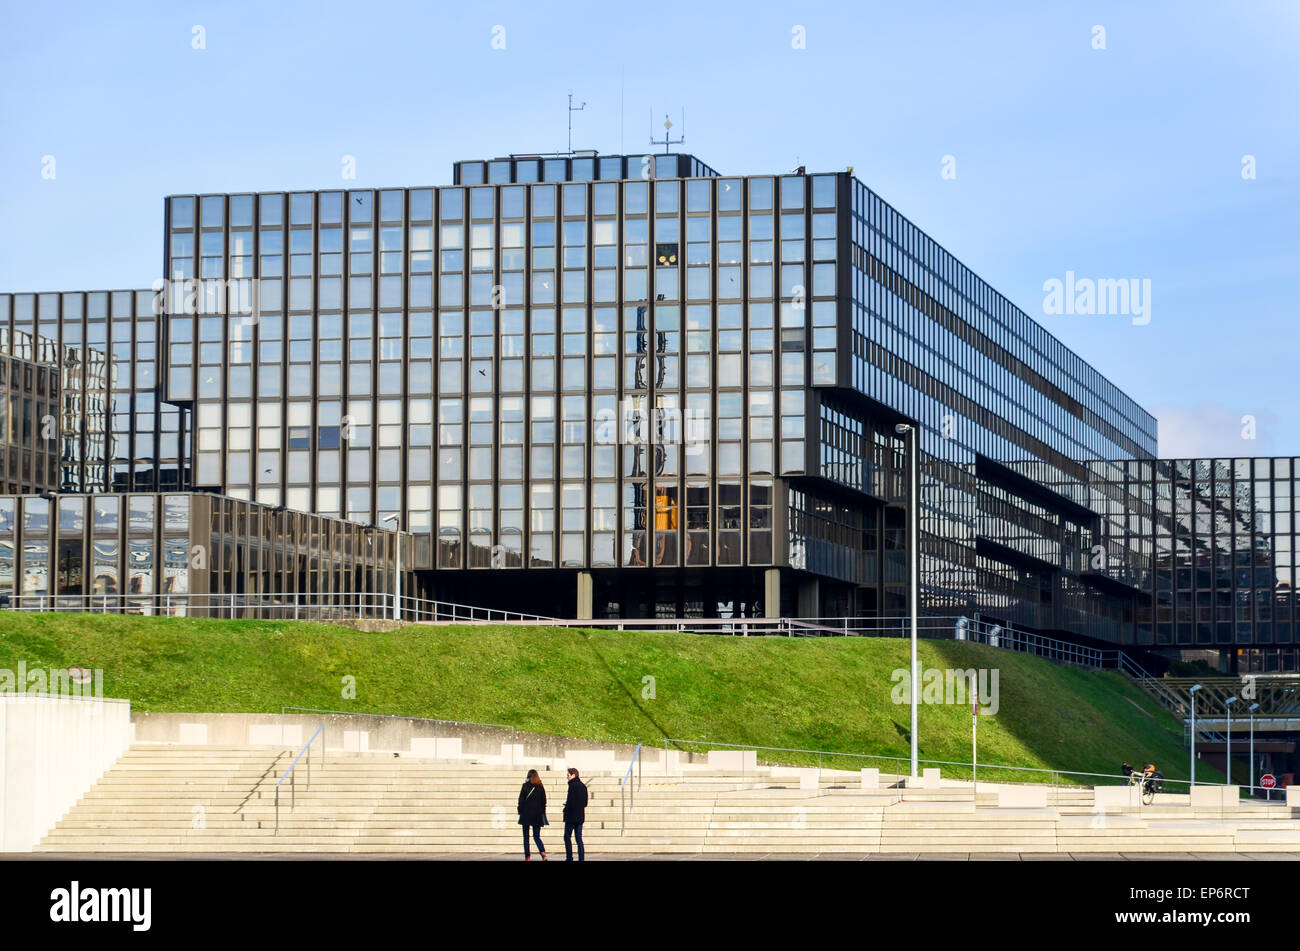 Tourists at the European Commission (Bâtiment Jean Monnet) in the European Quarter, Kirchberg, Luxembourg Stock Photo